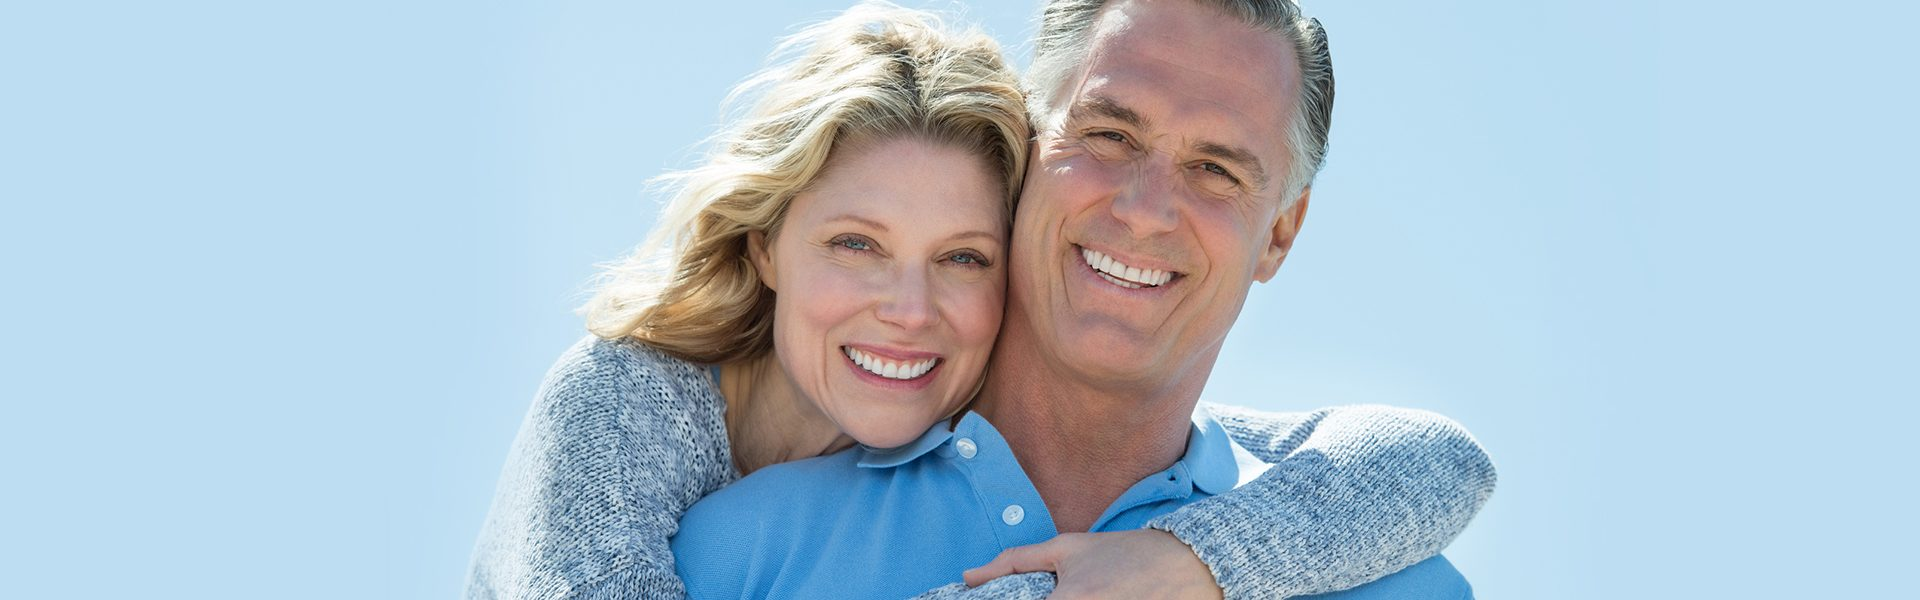 Dental Implants: Past, Present, and Future